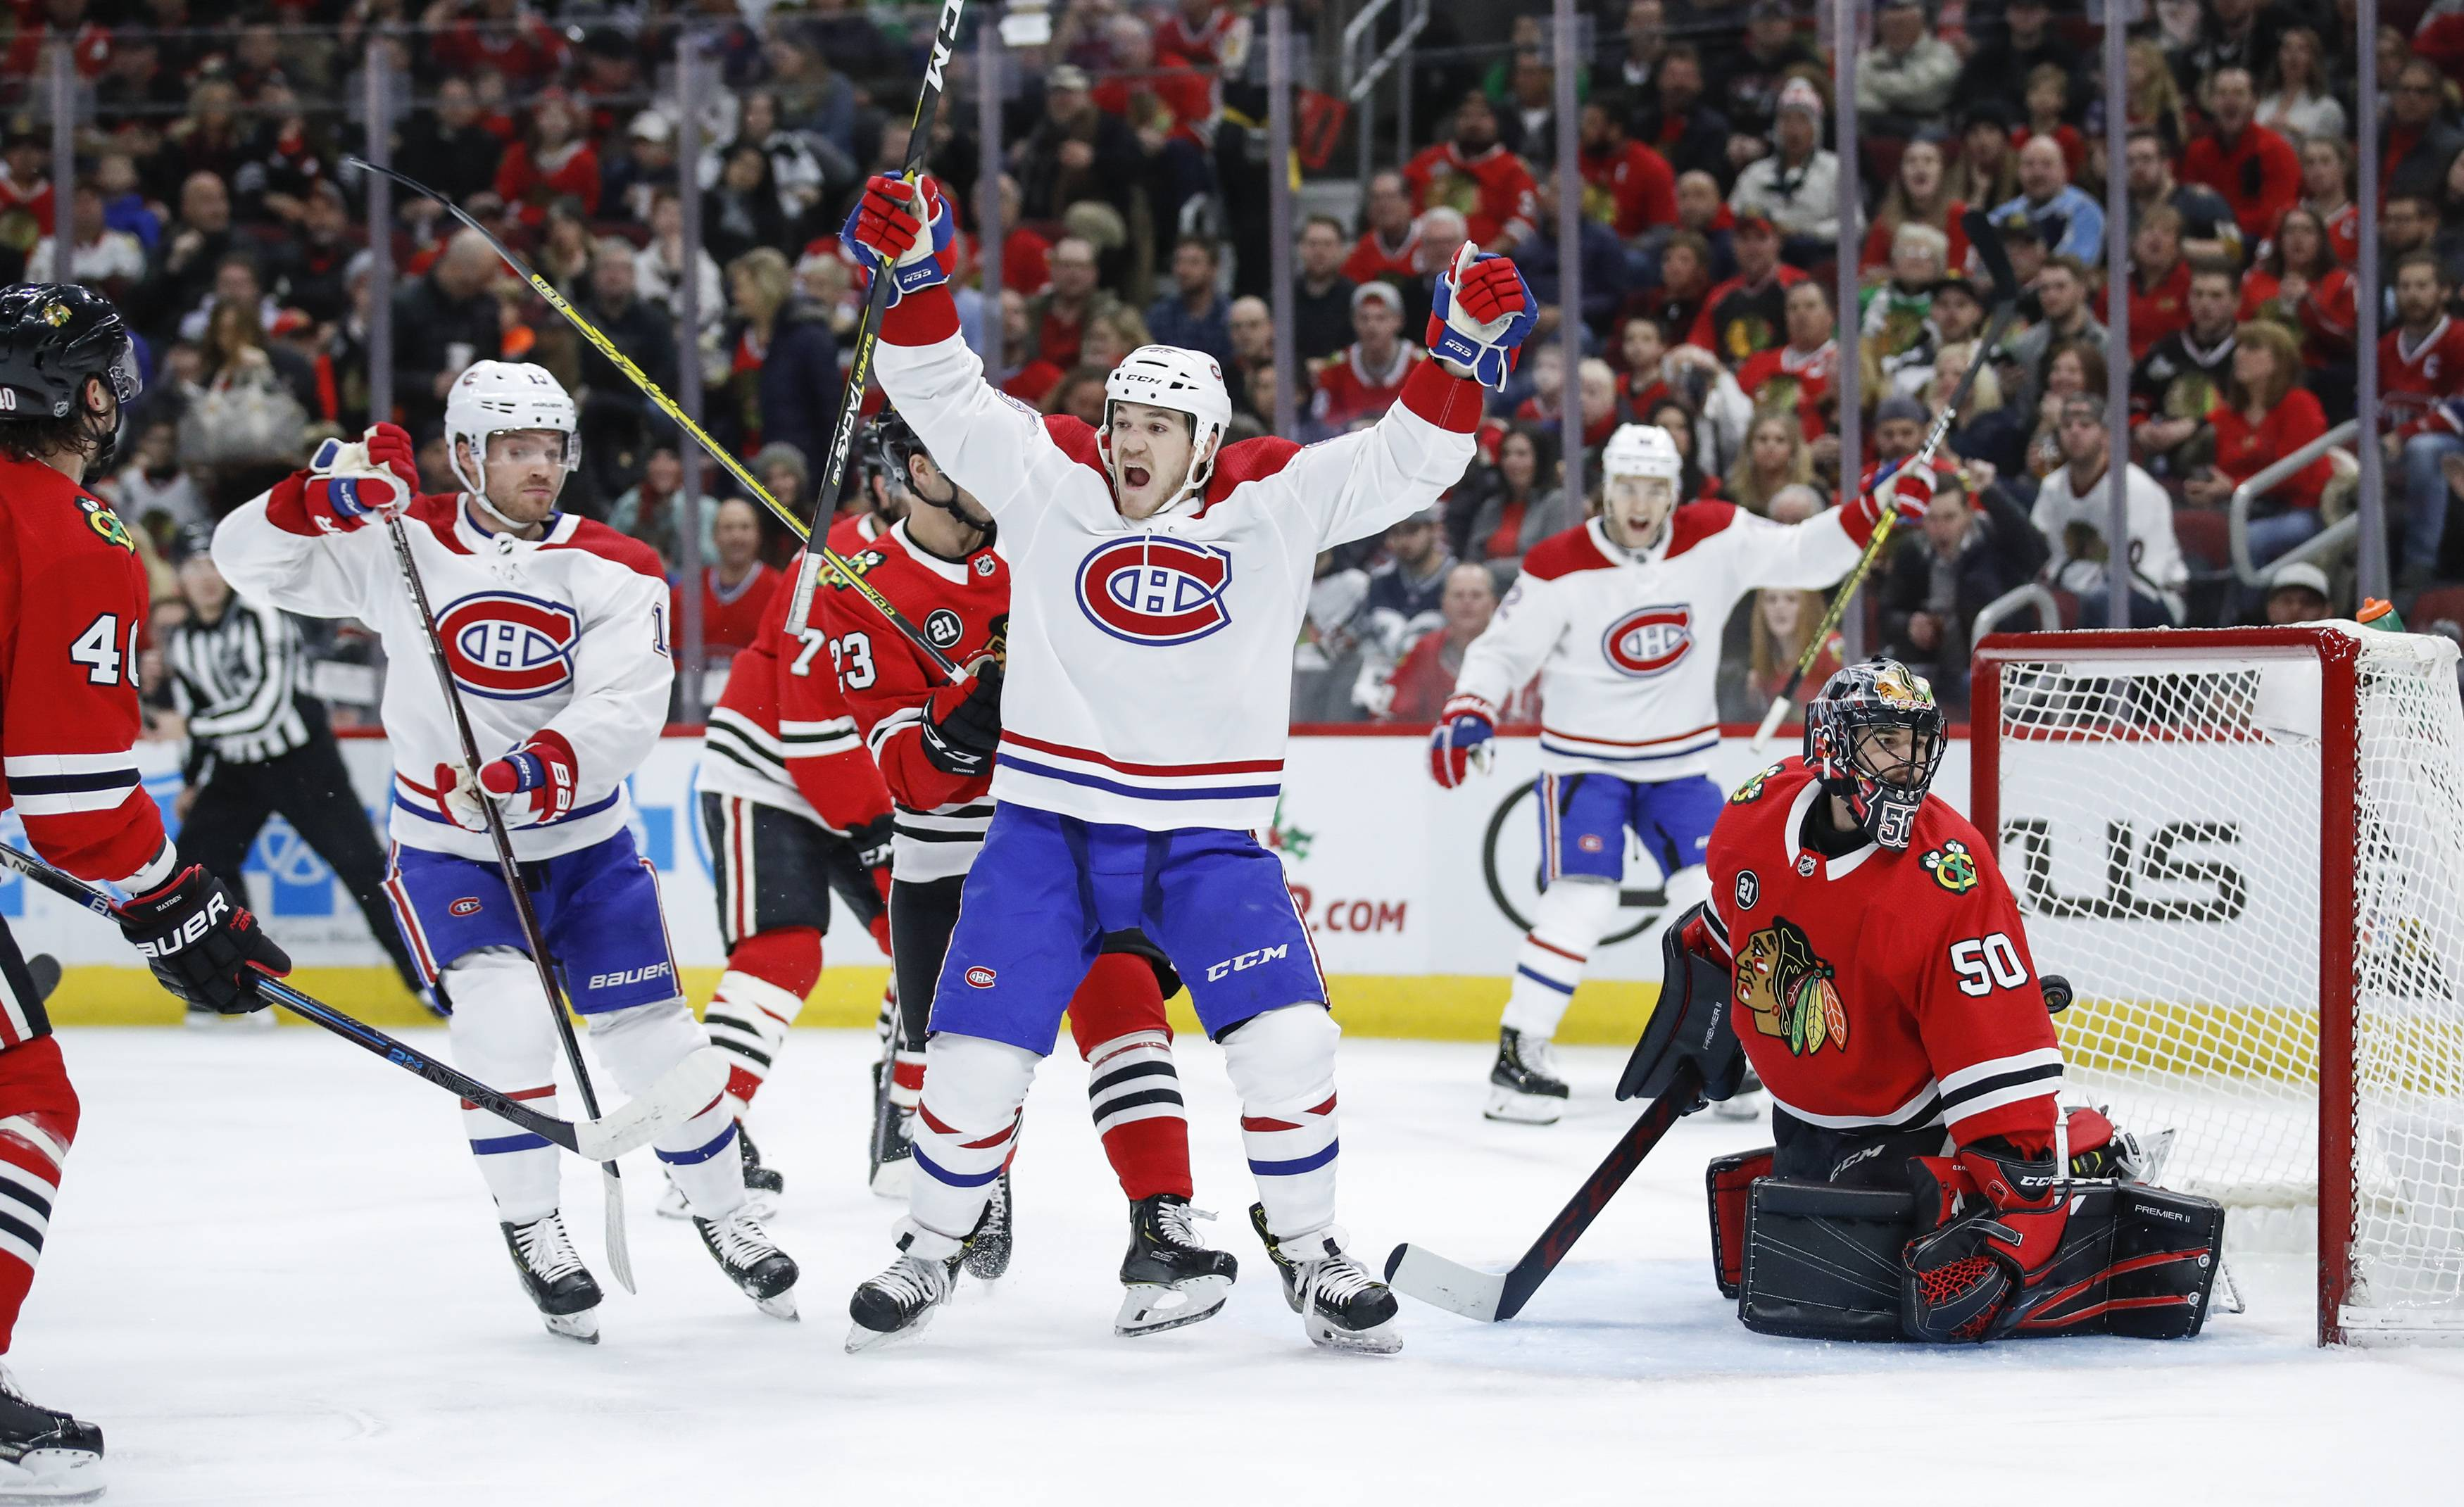 Montreal Canadiens right wing Andrew Shaw, center, reacts to a goal scored by left wing Max Domi, second left, against Blackhawks goaltender Corey Crawford, right, during the first period on Sunday in Chicago.